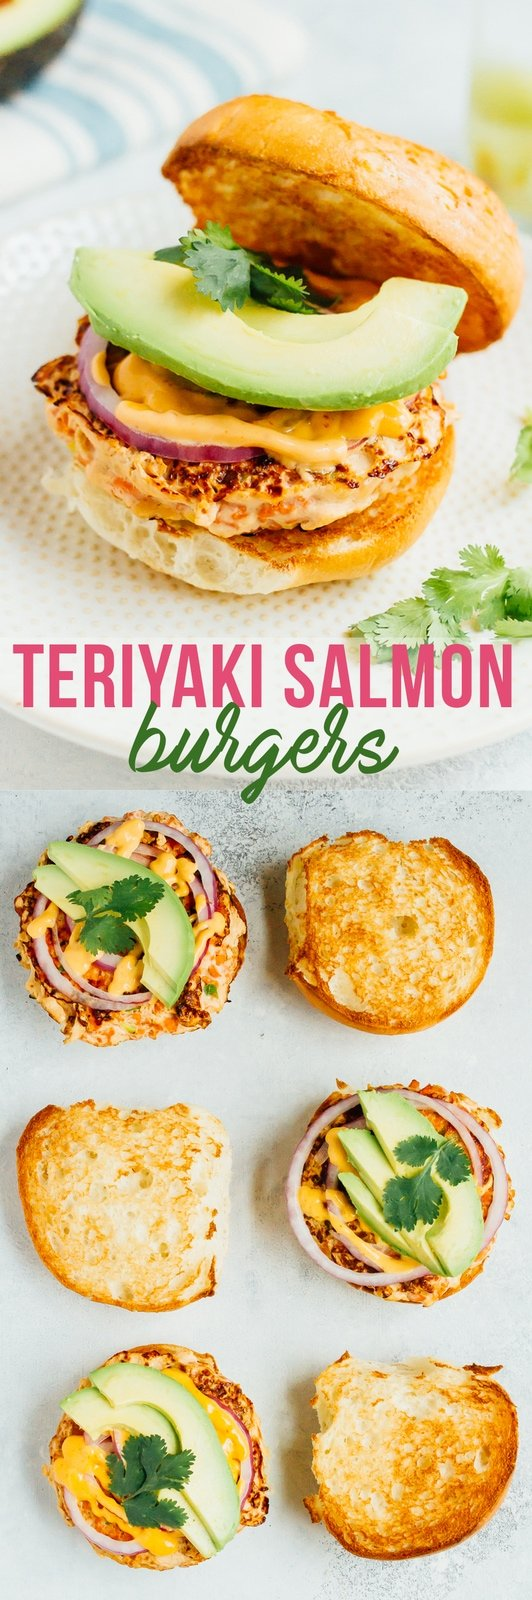 Teriyaki Salmon Burgers with Sriracha Mayo, Avocado, Red Onion and Cilantro.